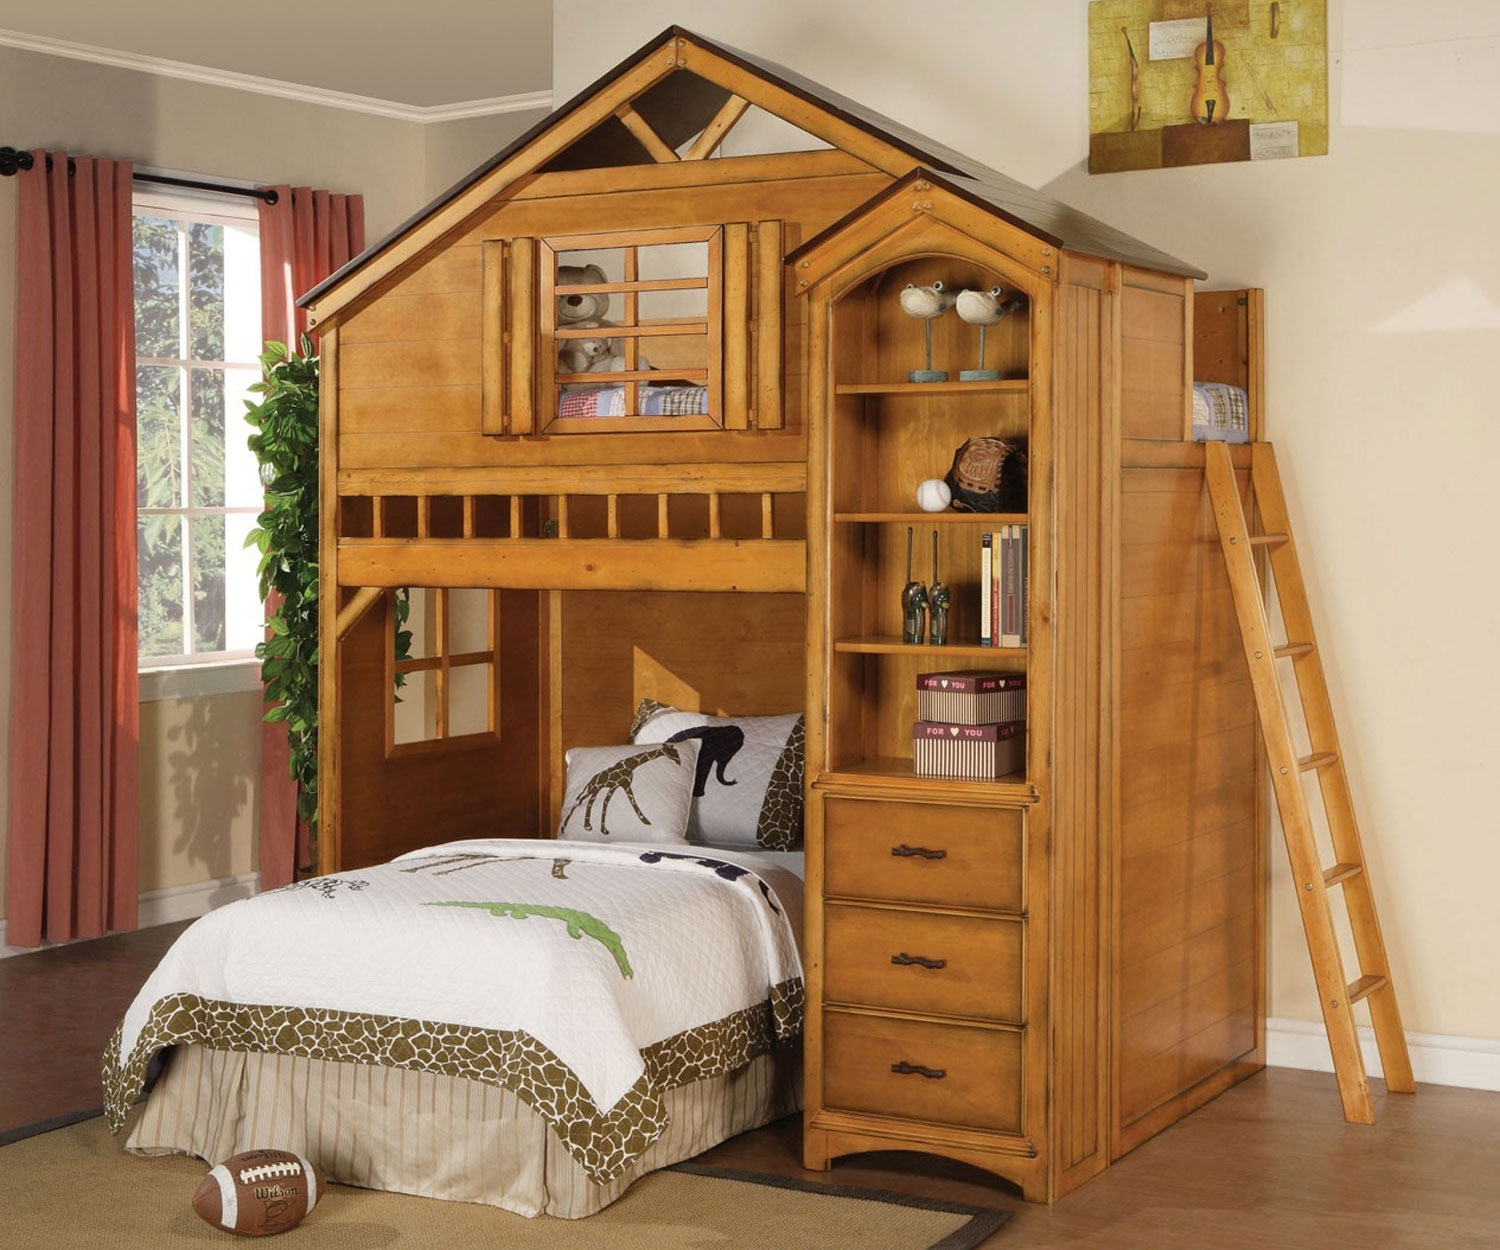 Image of: Treehouse Loft Bed for Adults